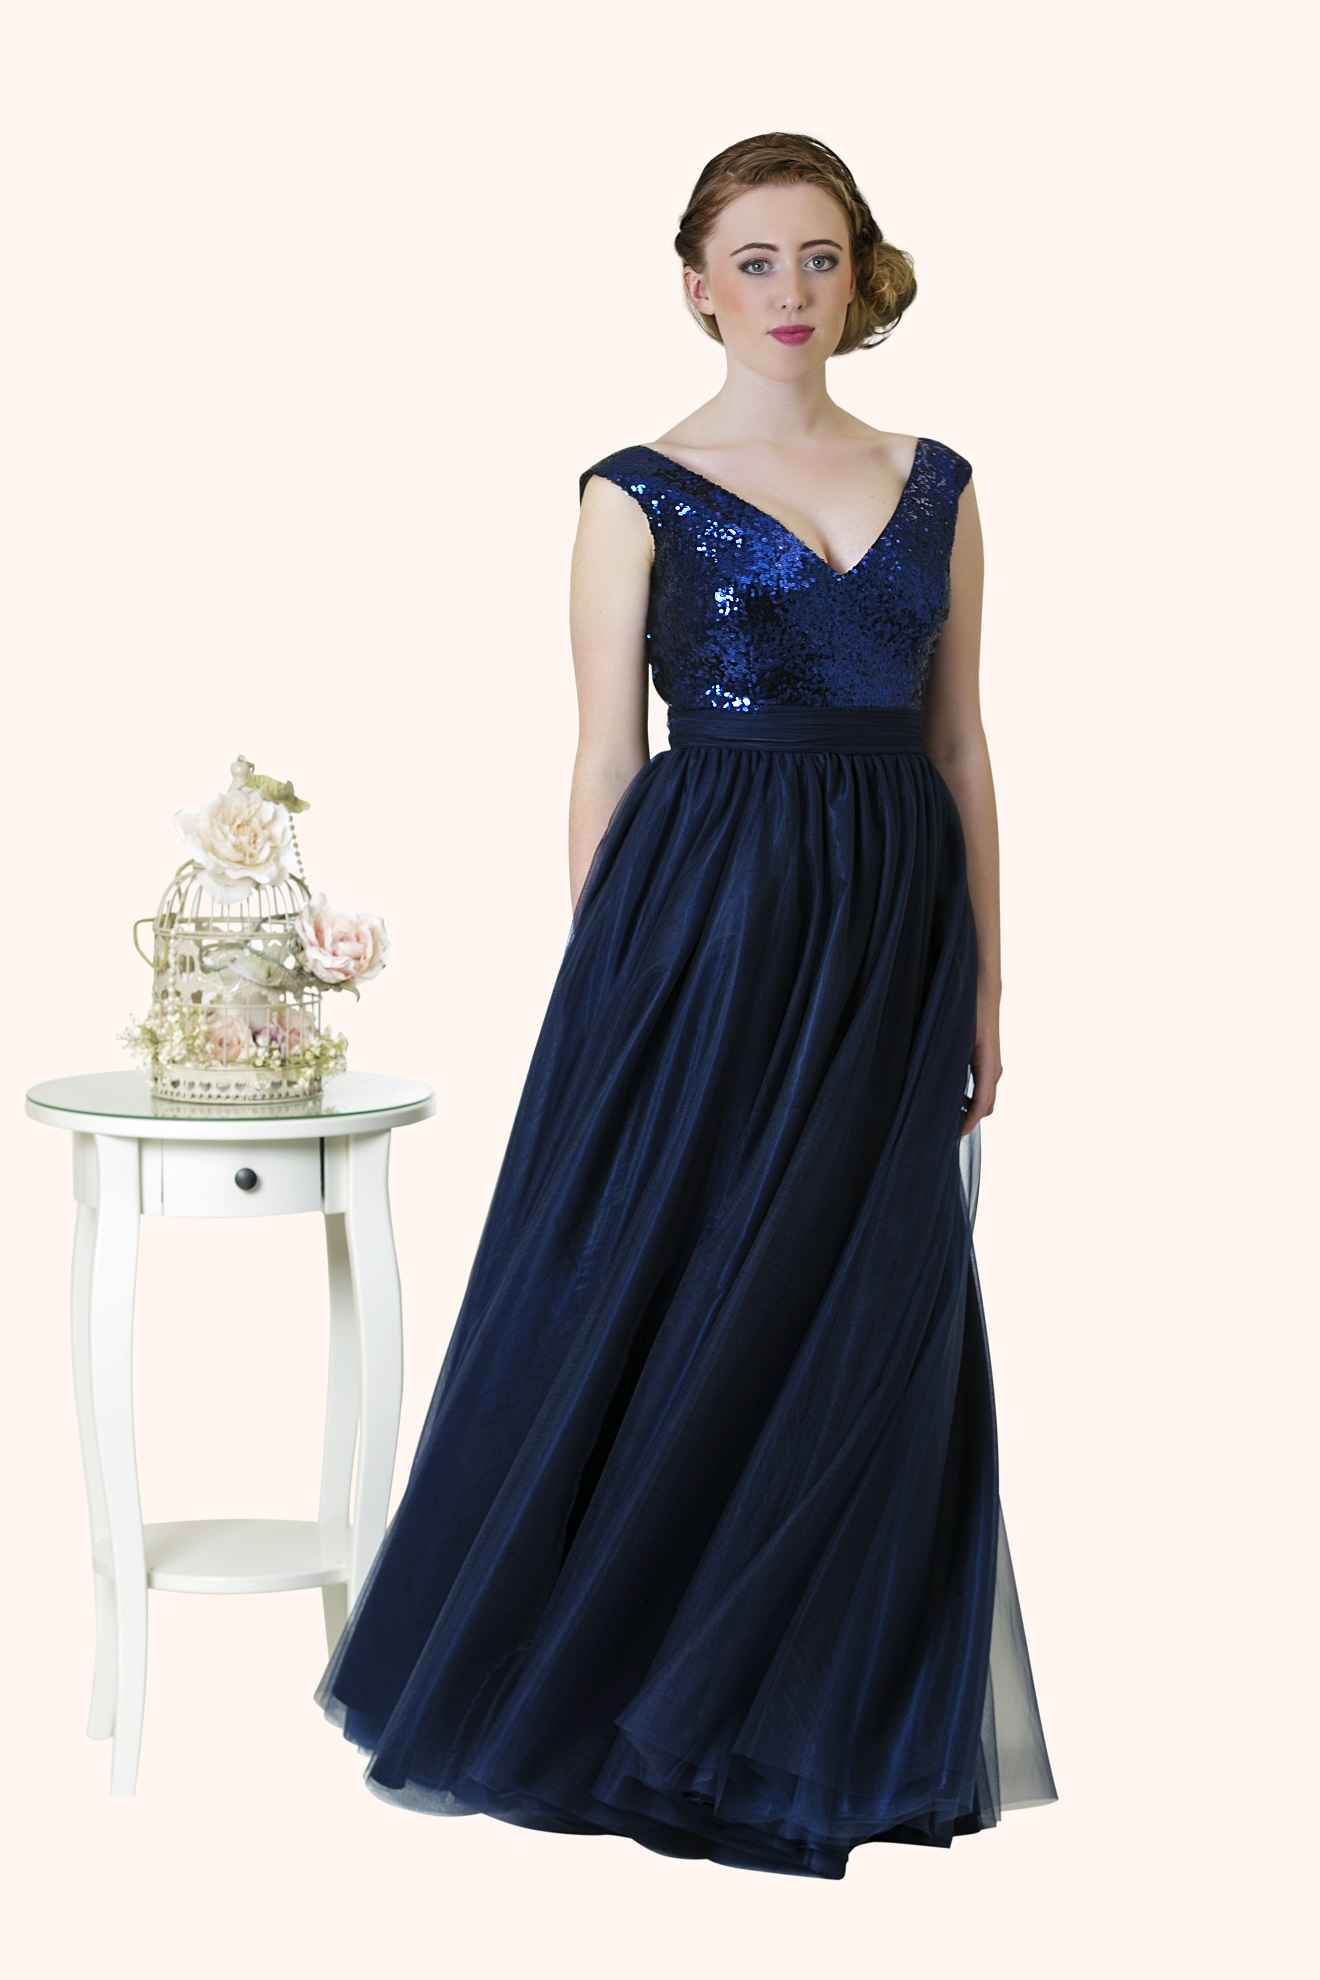 Stunning navy blue sequin bridesmaid dress estilo moda milton keynes faye ball gown sequin and tulle prom dress navy blue evening ombrellifo Image collections